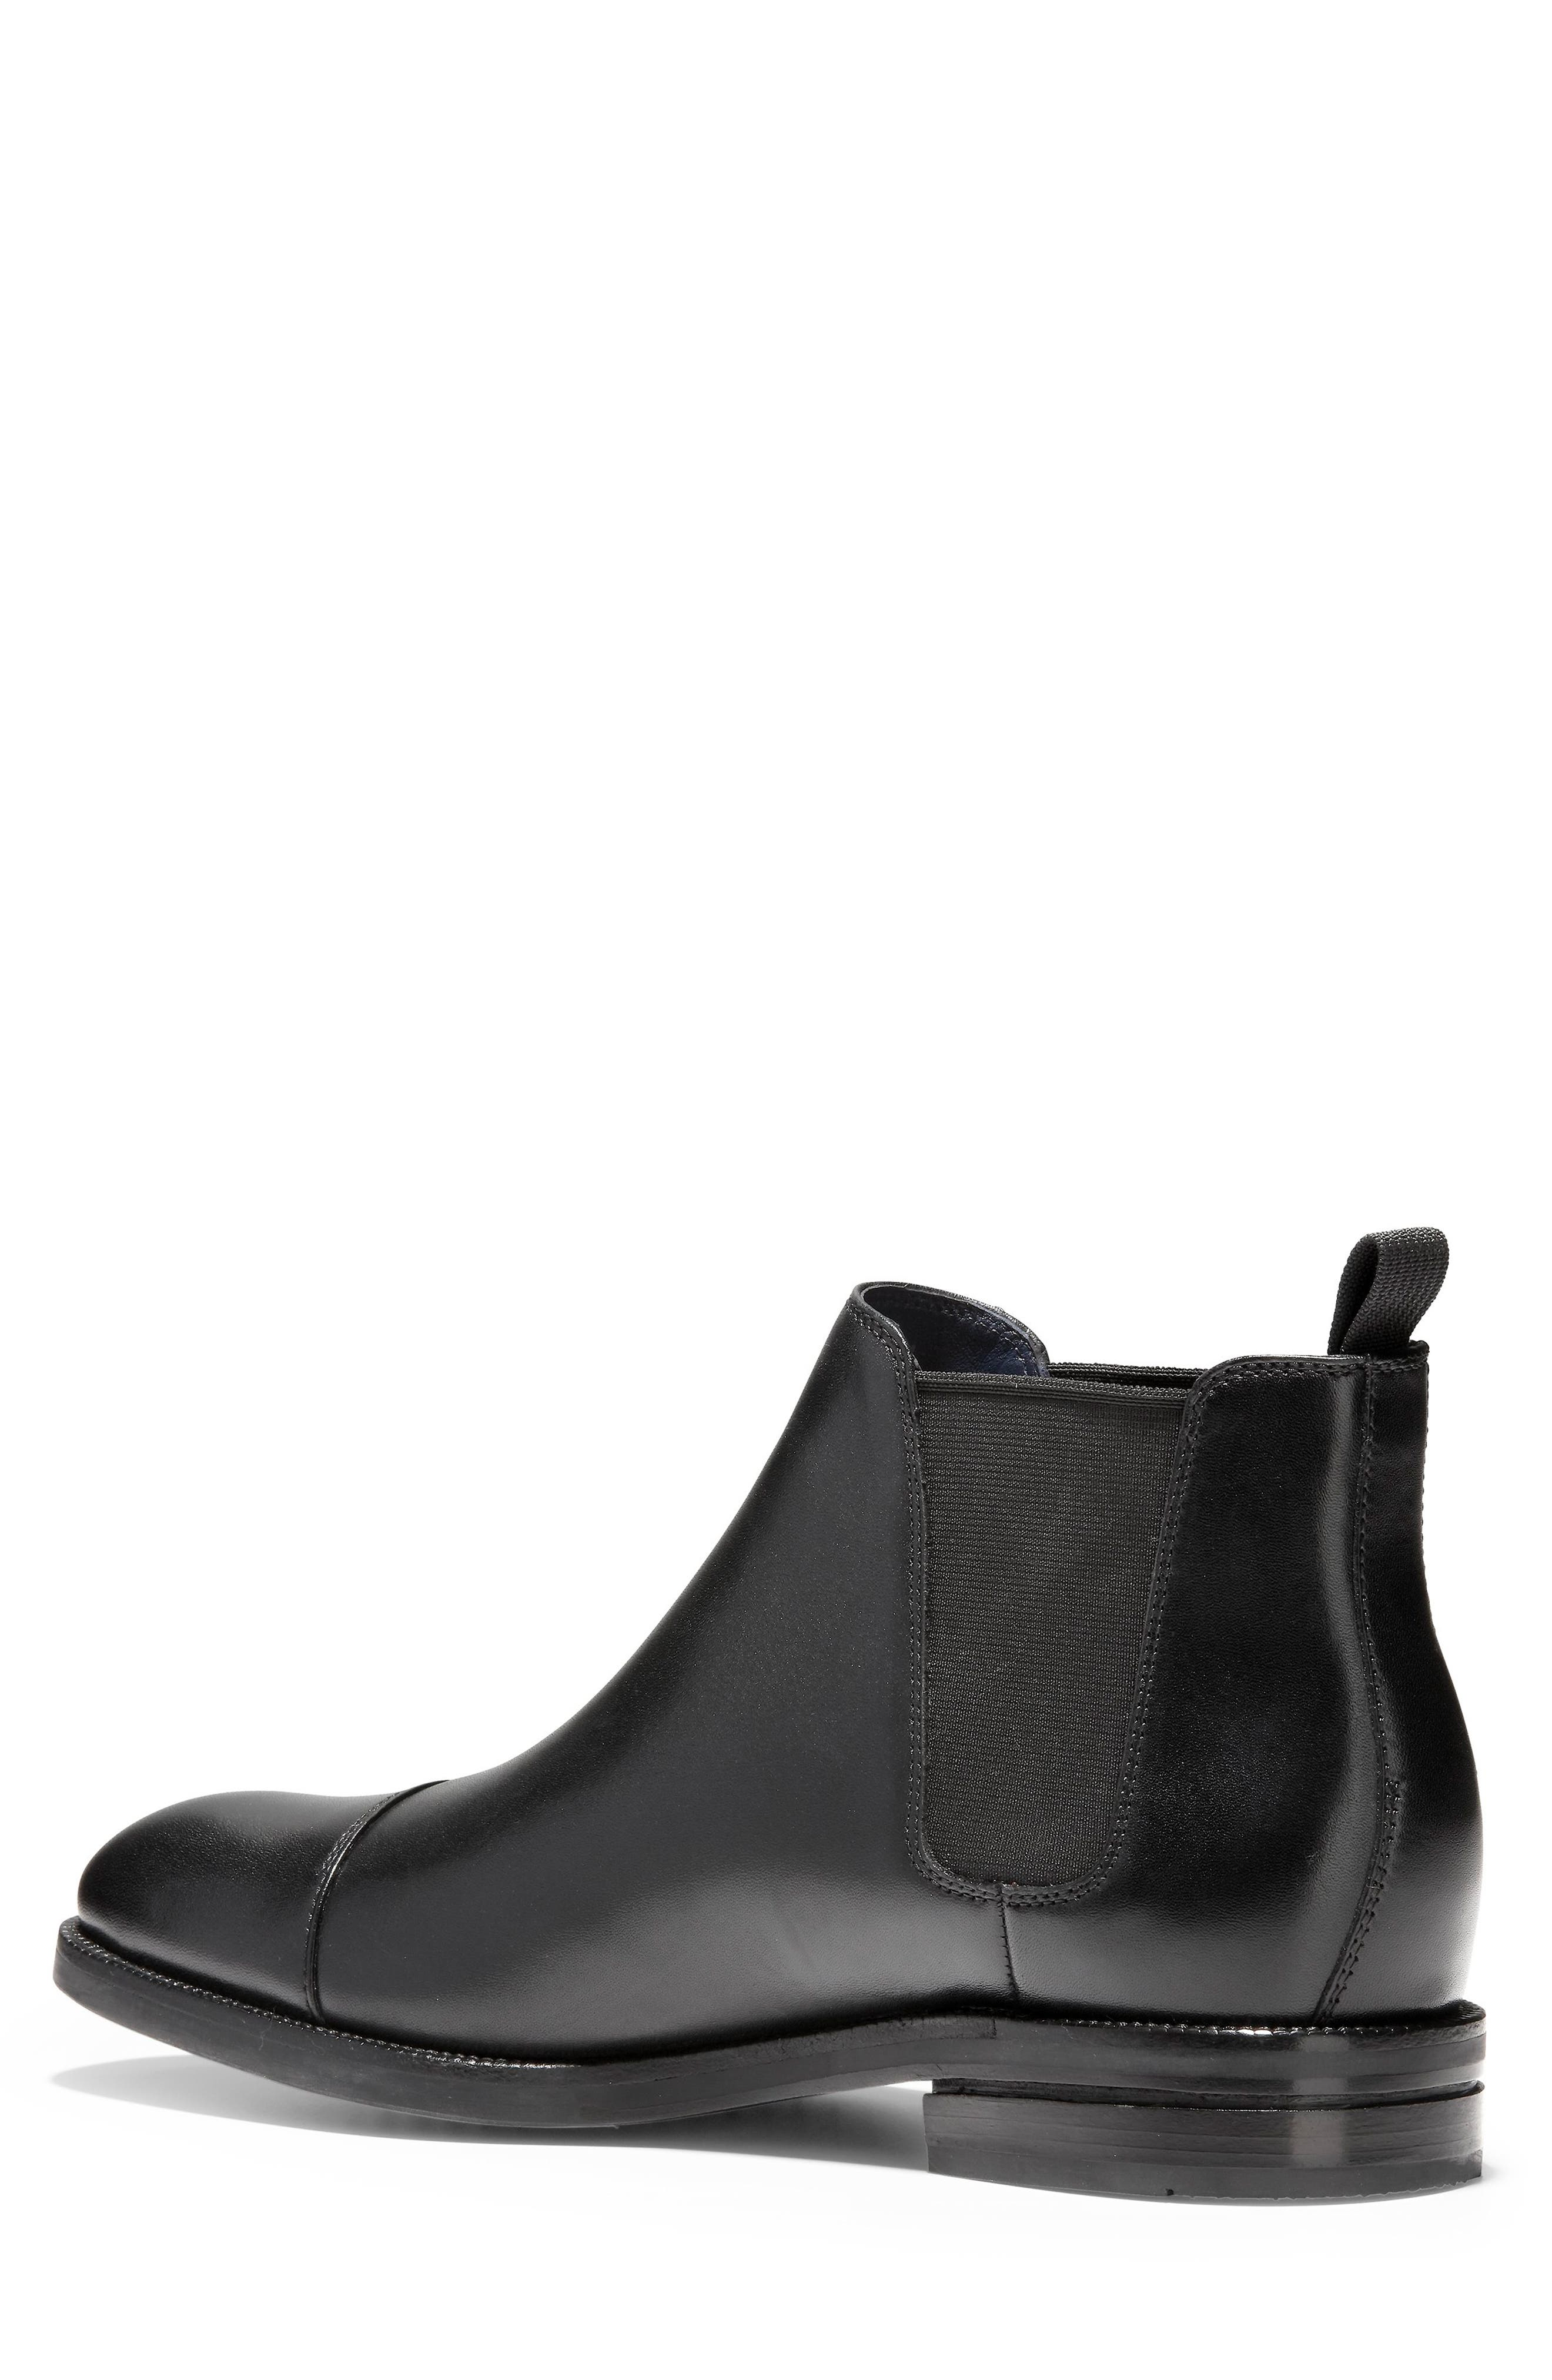 COLE HAAN, Wagner Grand Chelsea Boot, Alternate thumbnail 2, color, 001